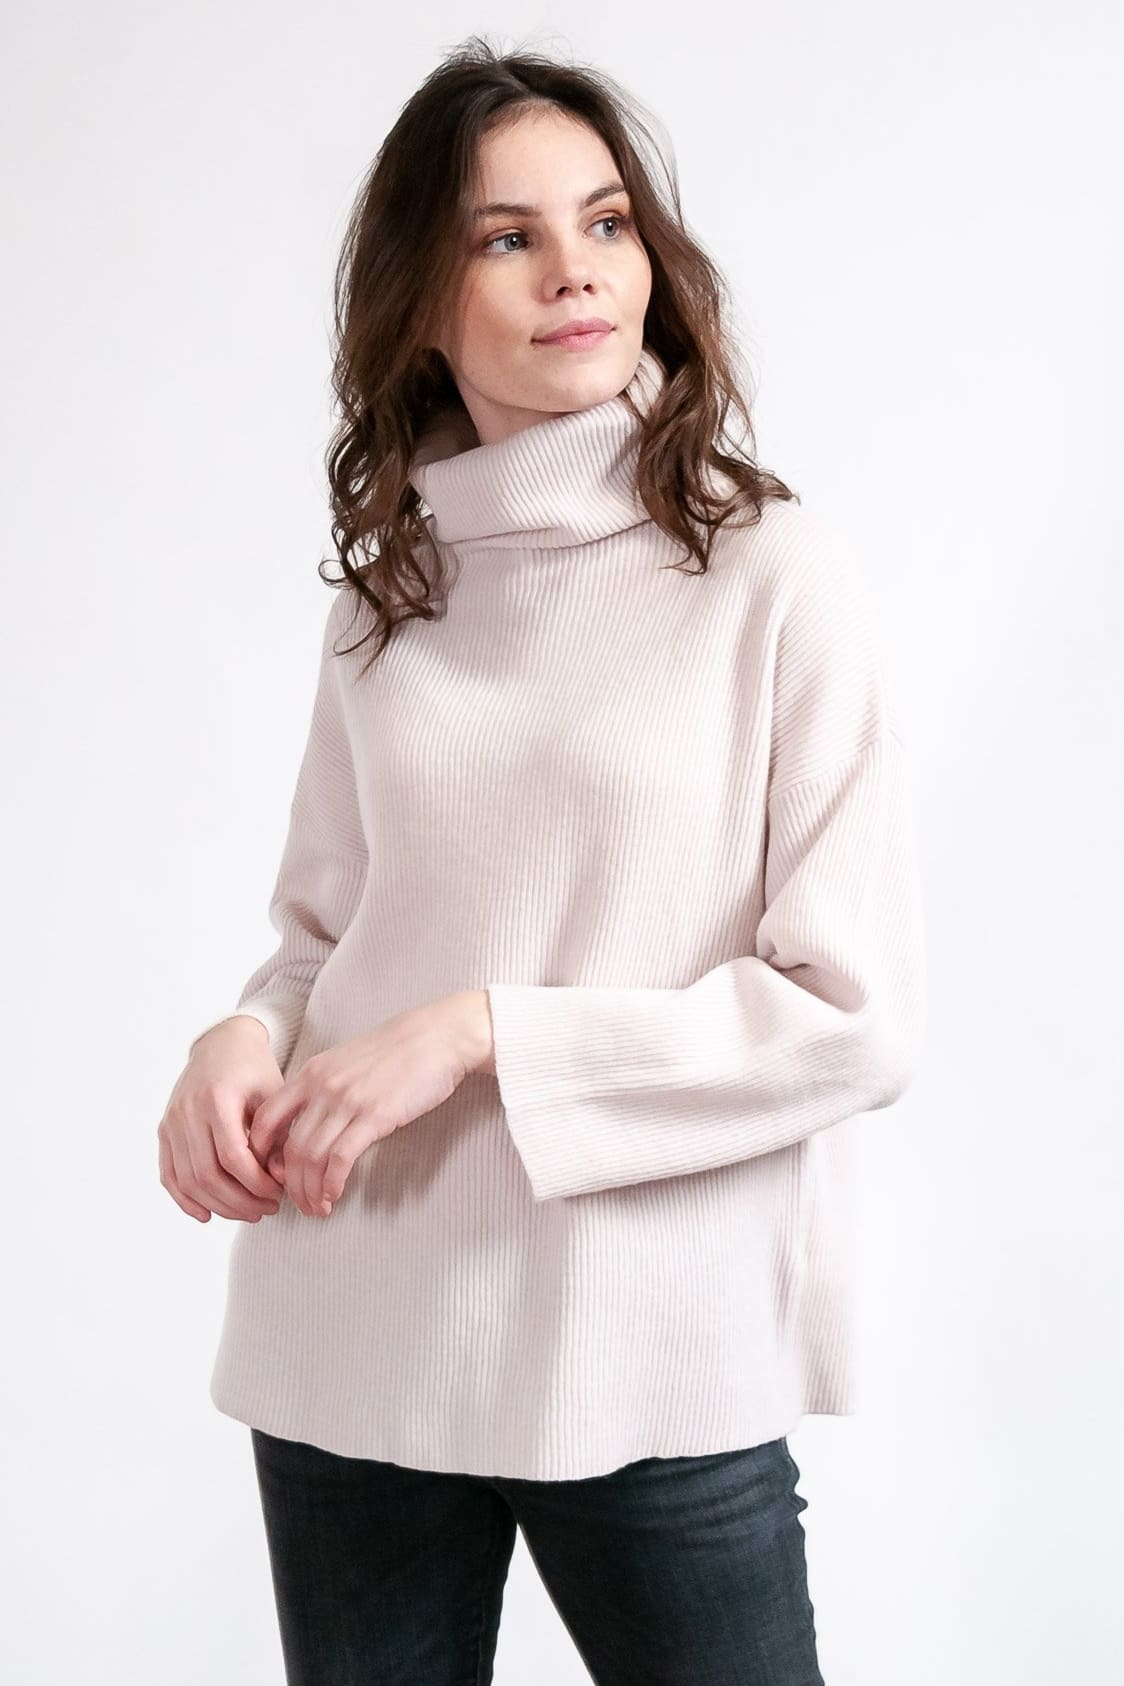 Brue - Slouchy Ribbed Turtleneck - Blush - Sweaters